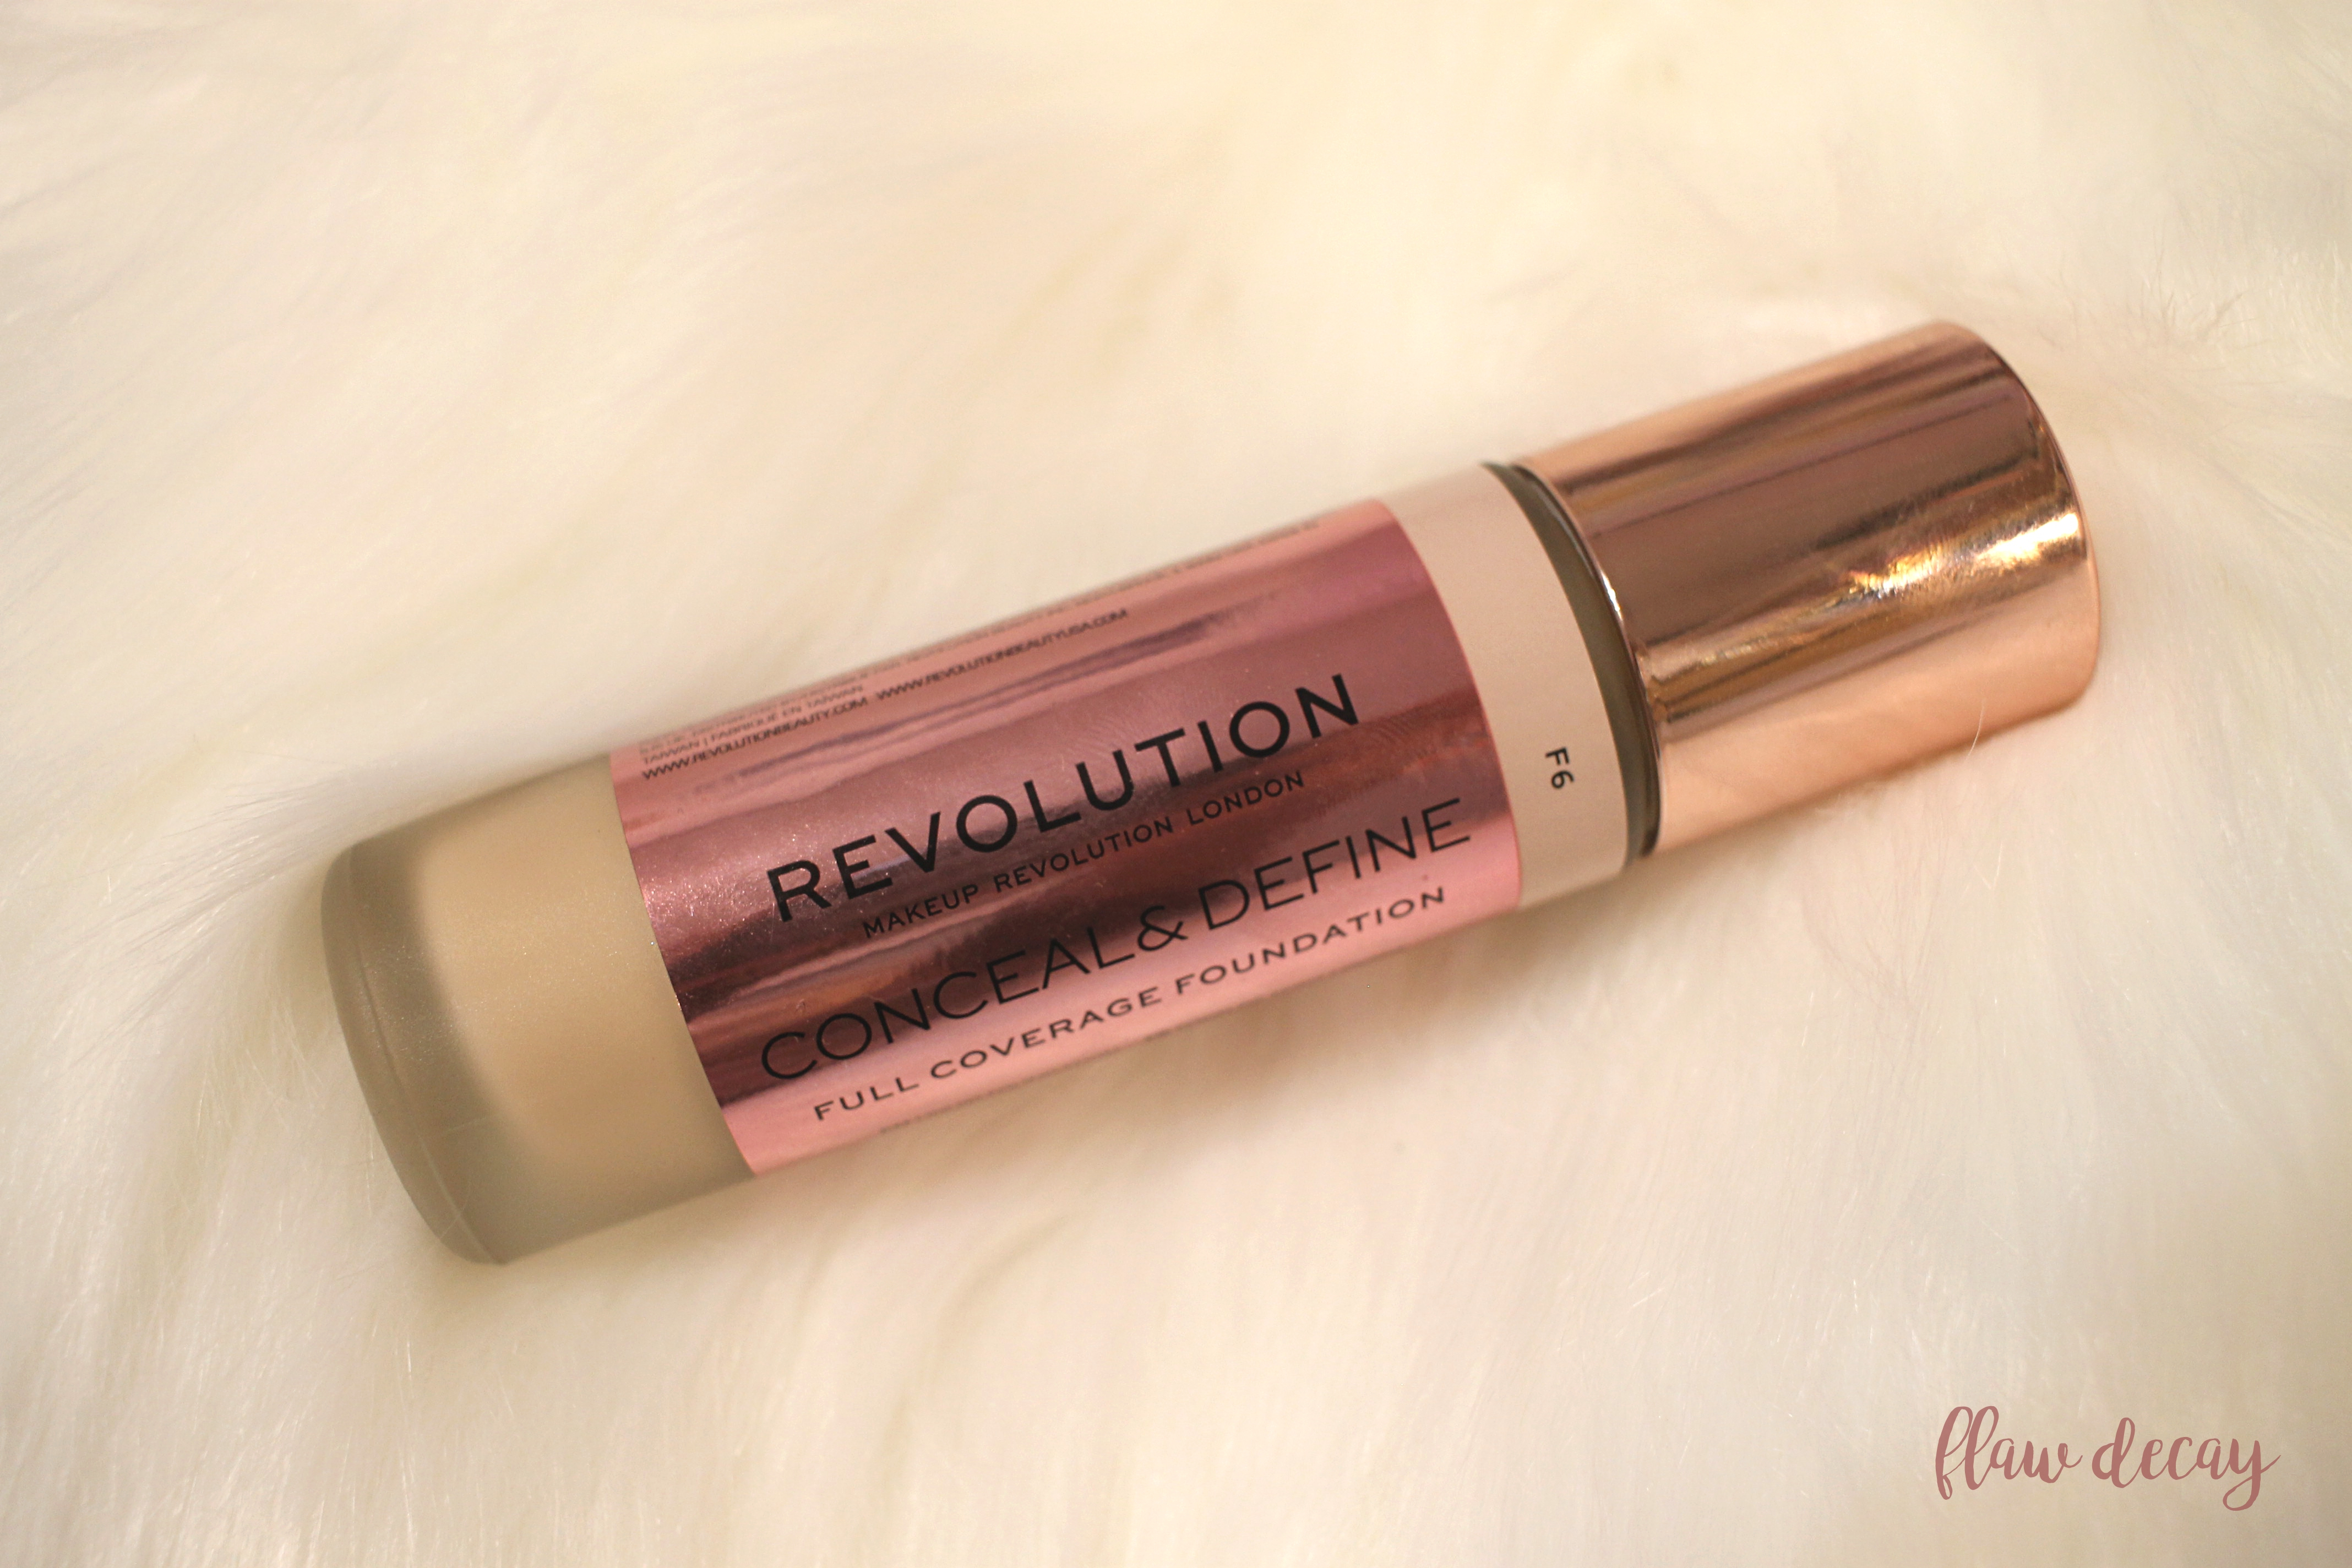 Conceal Define Foundation Makeup Revolution Review 9h Wear Test Flaw Decay